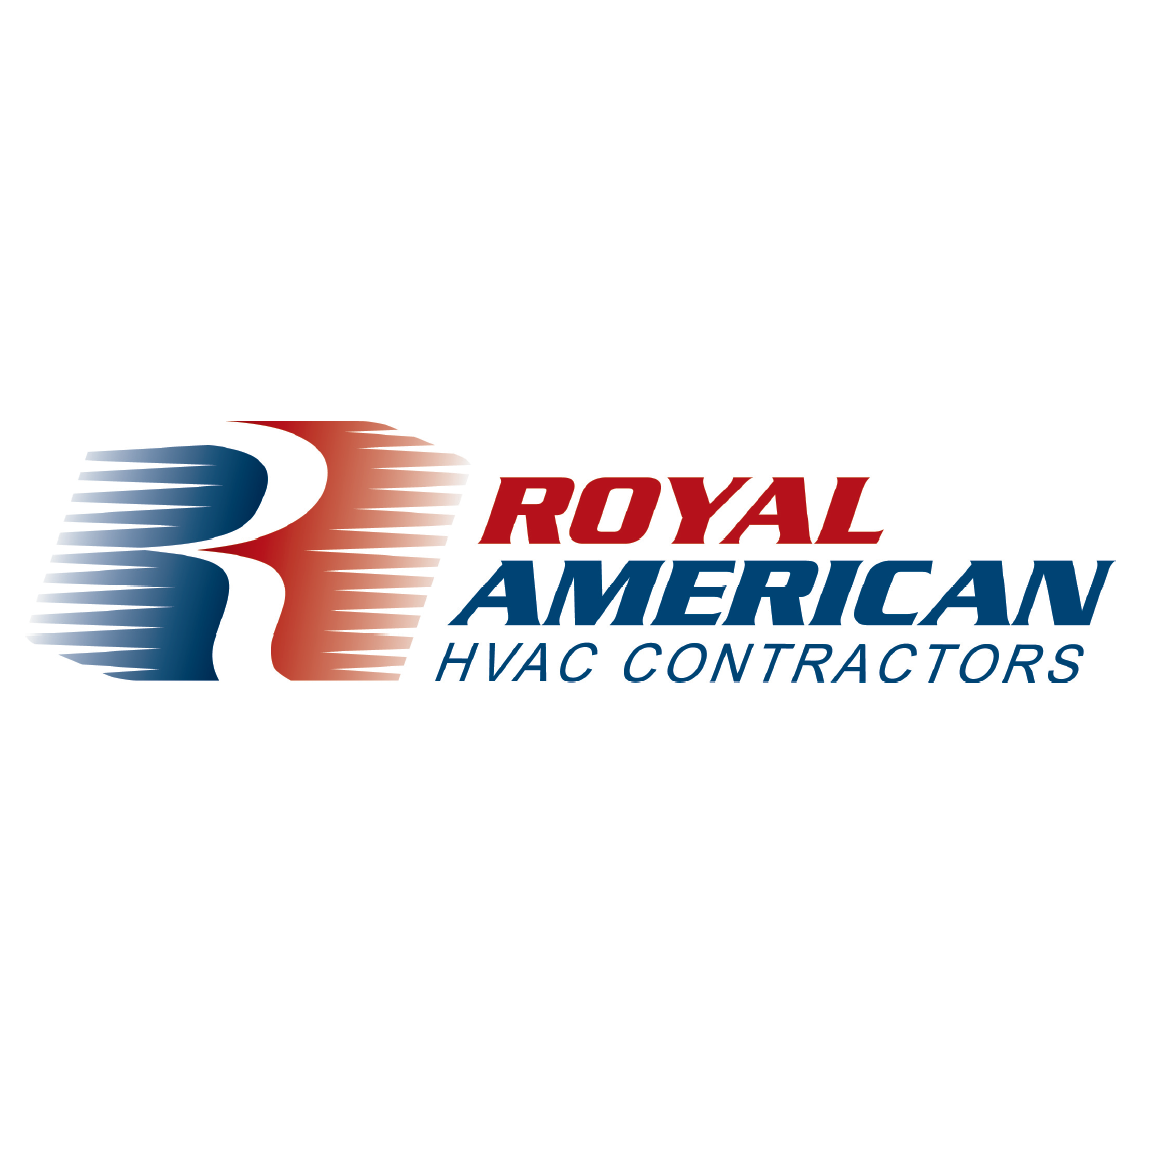 Royal American HVAC Contractors